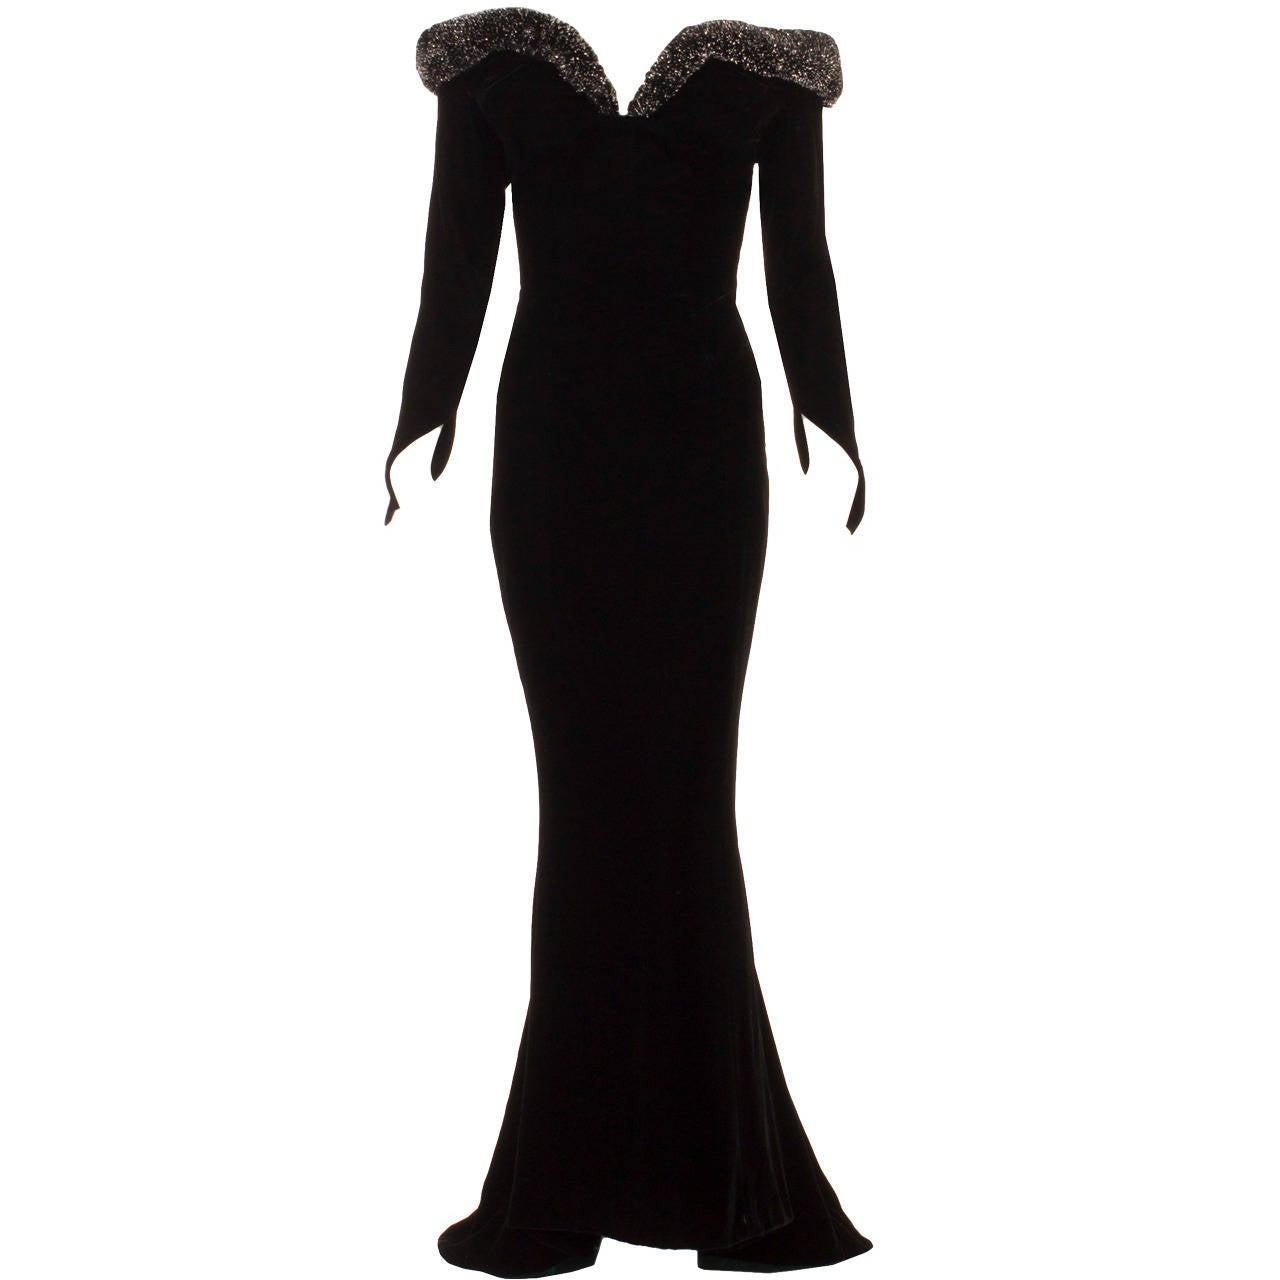 Thierry Mugler Black Velvet Dress, Circa 1987